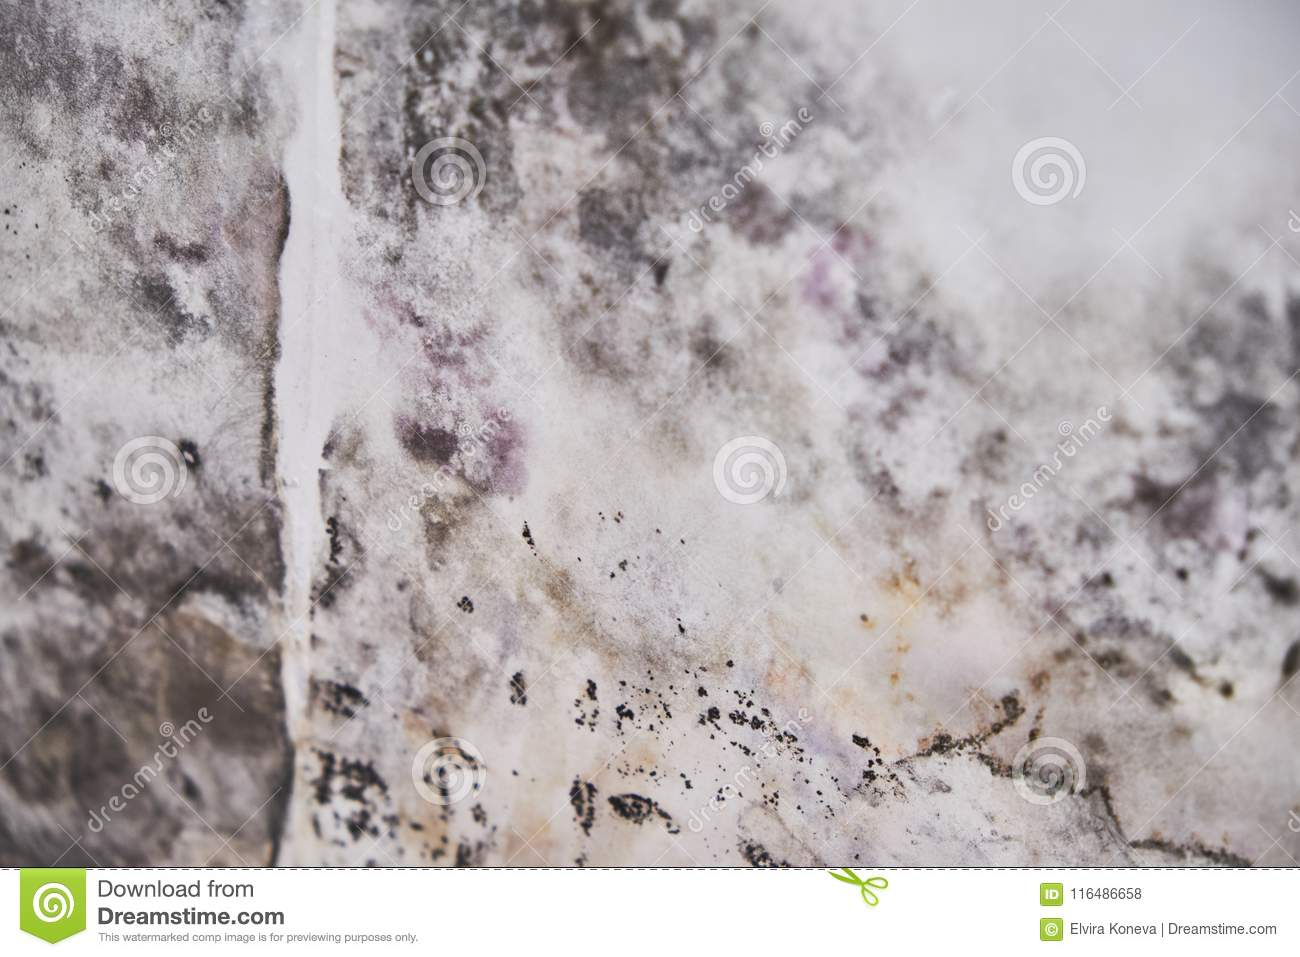 Black Mold Buildup In The Corner Of An Old House Development Of